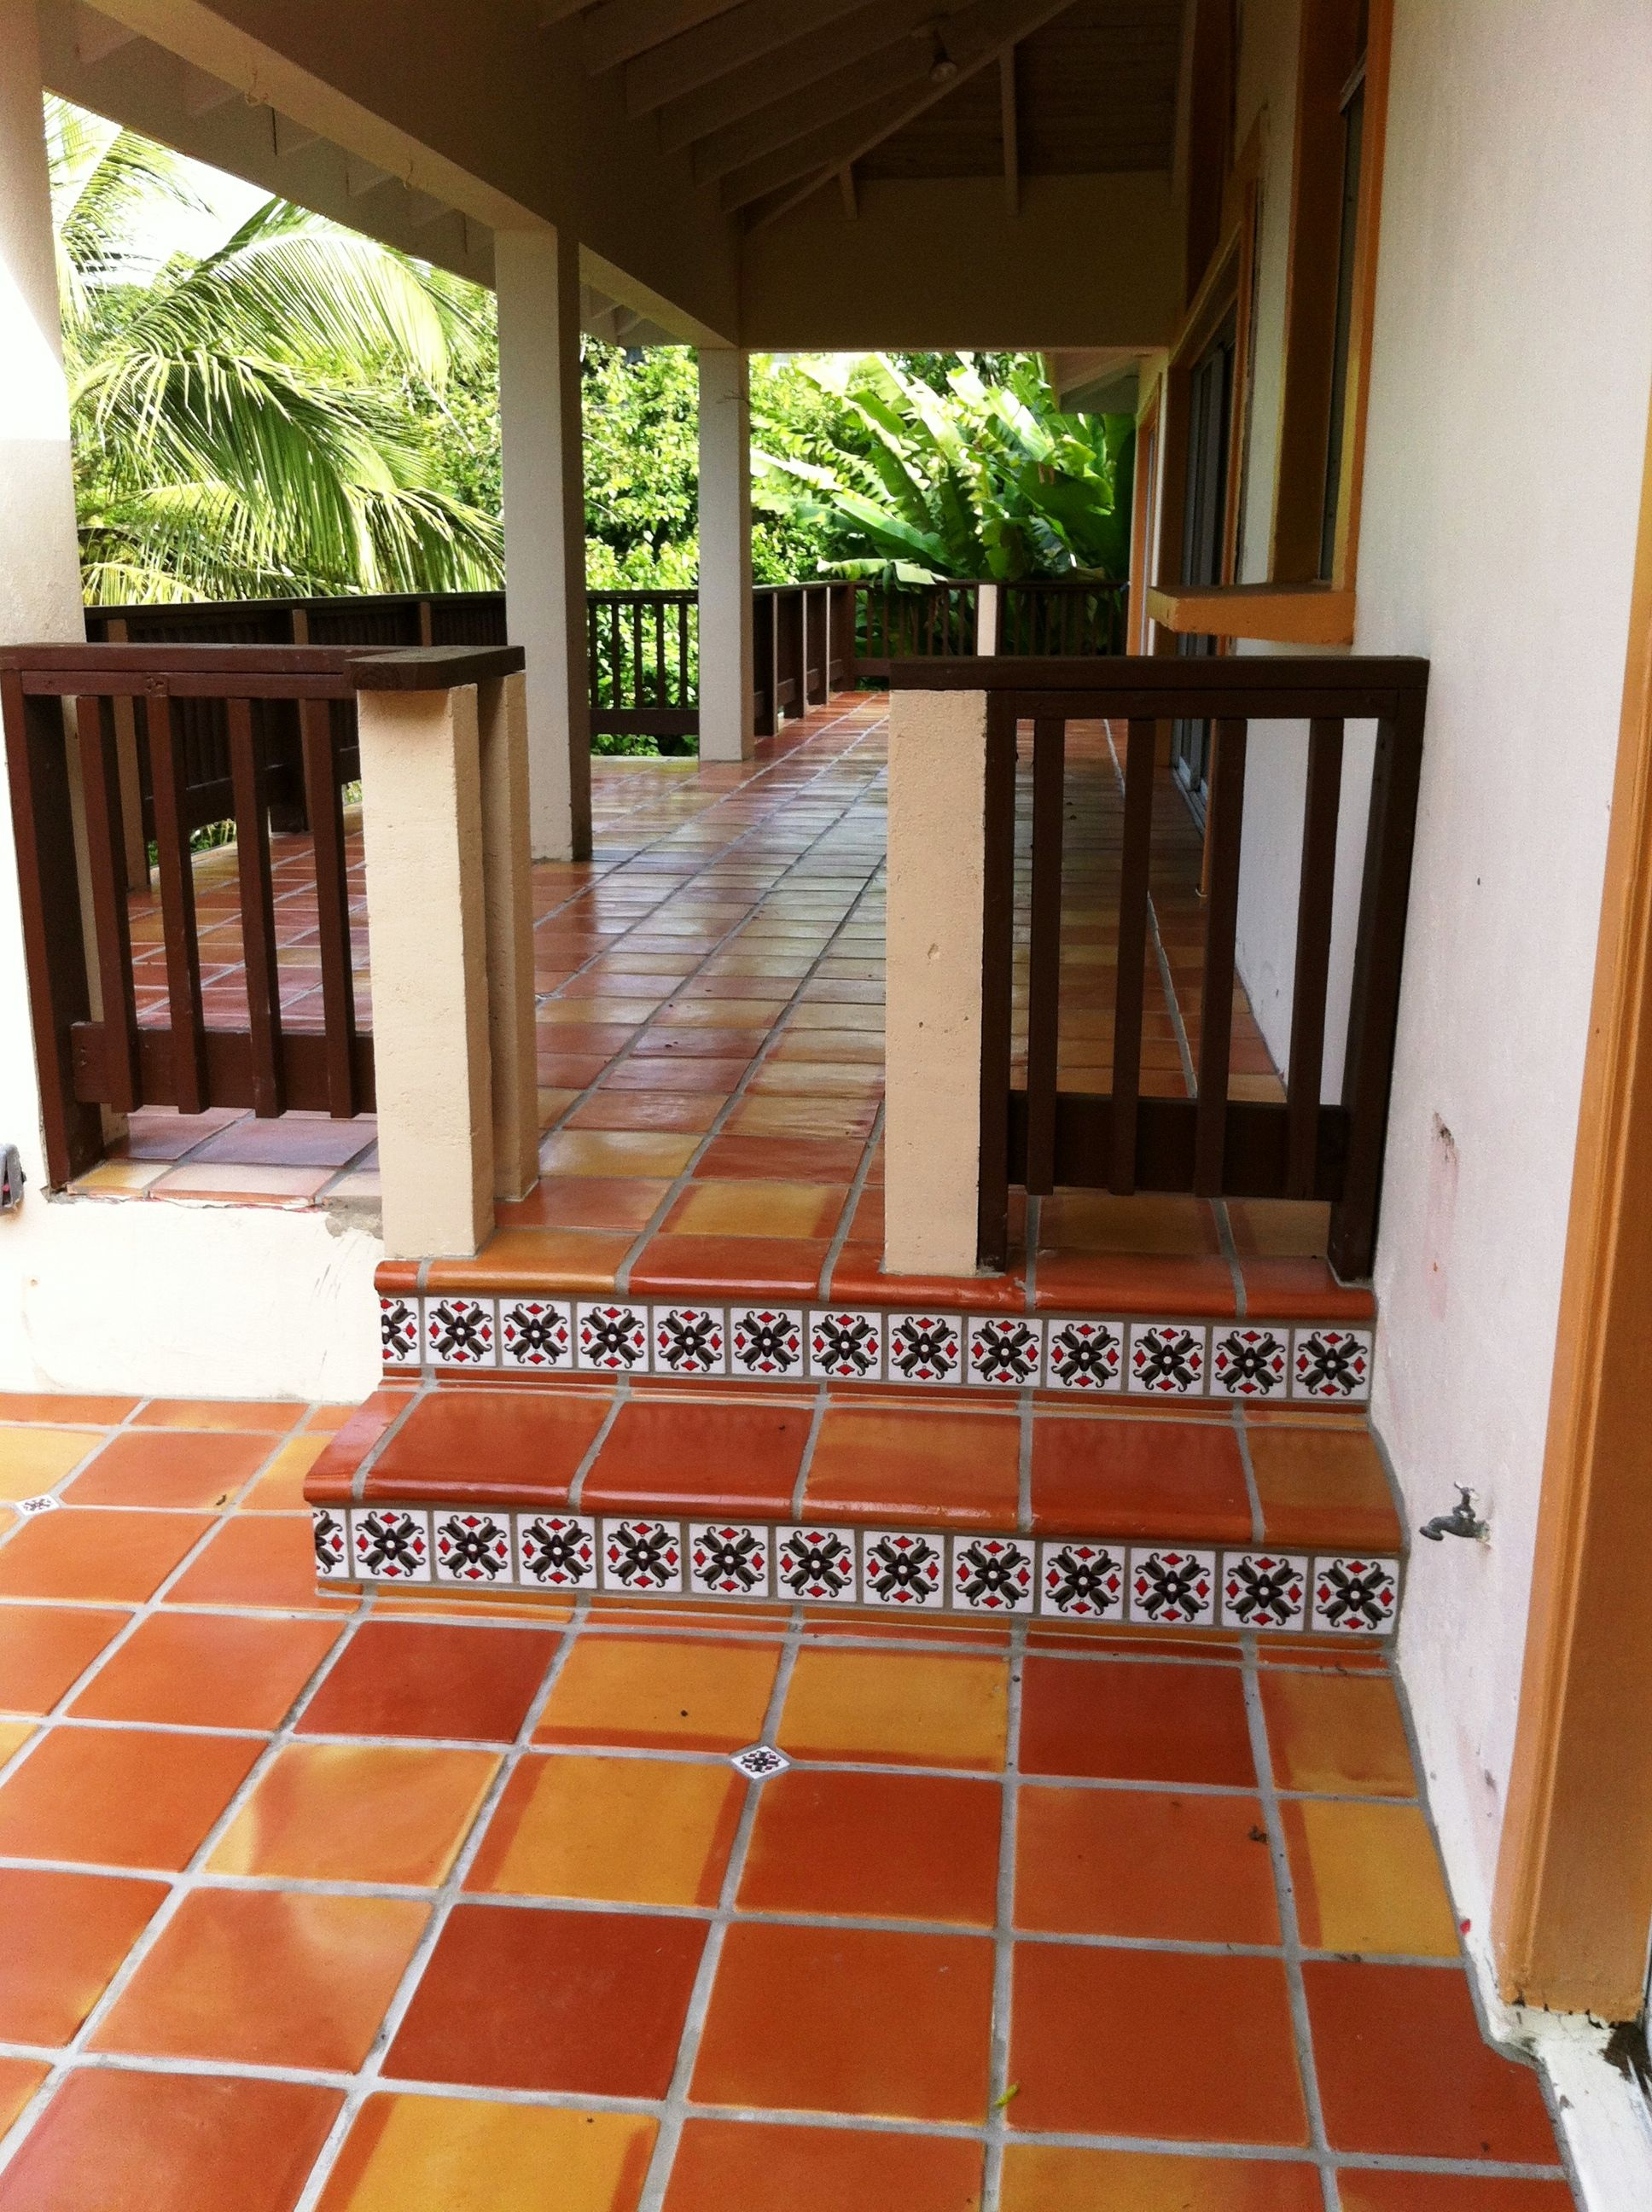 Terracotta Outdoor Patio   Love Terracotta Tile. Looking For Ideas For The  New House.